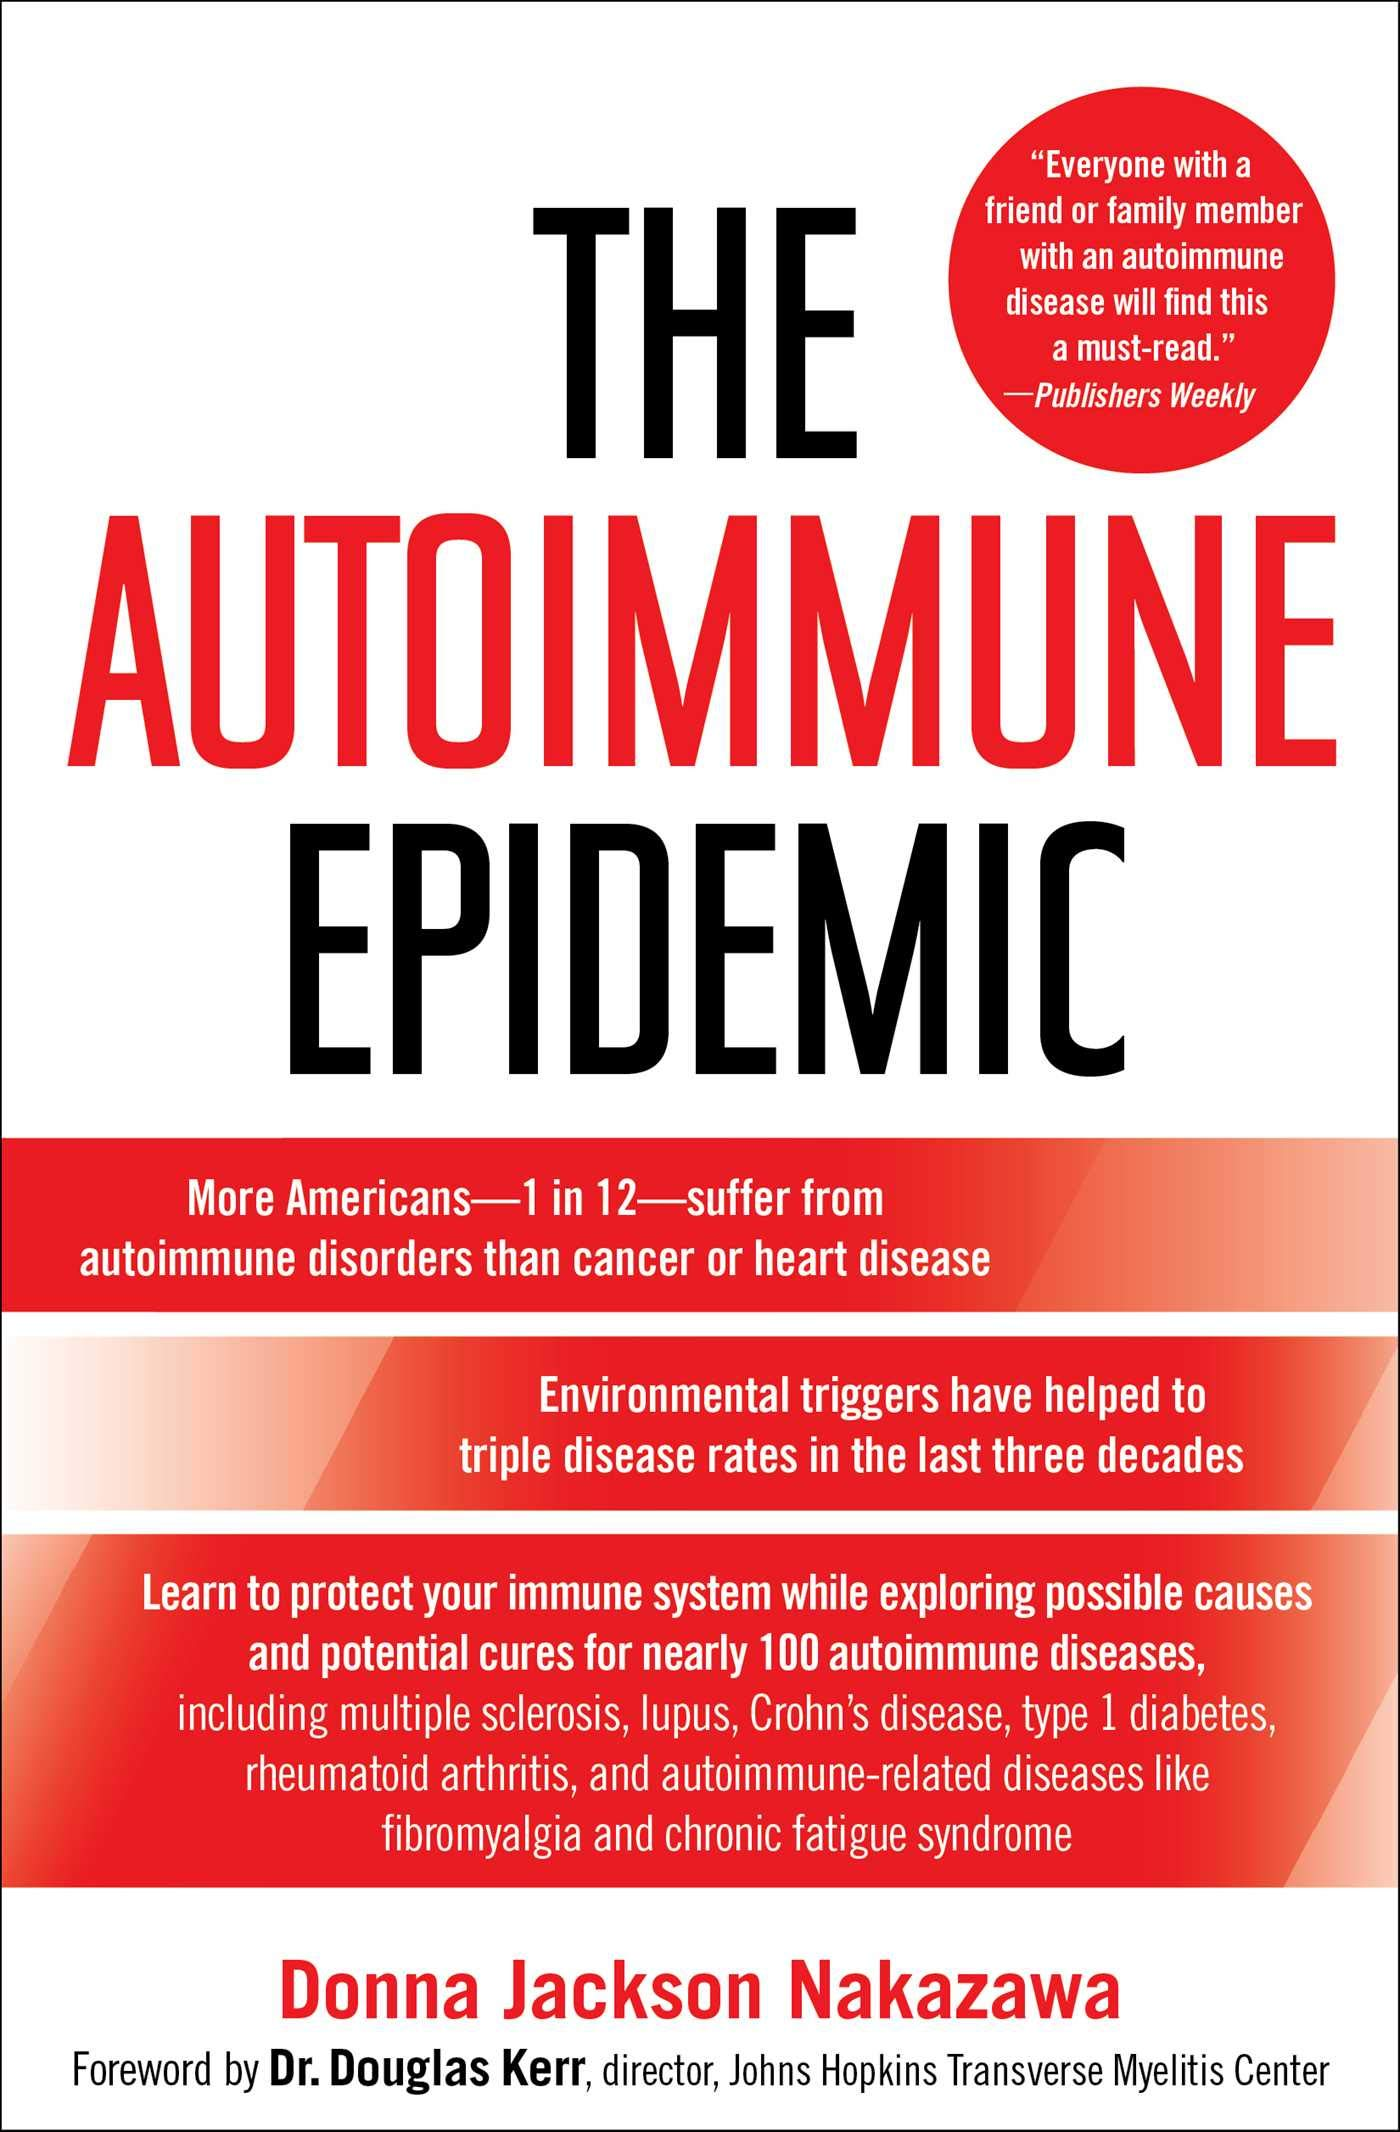 "the autoimmune epidemic - By Donna Jackson Nakazawa""The Autoimmune Epidemic by Donna Jackson Nakazawa is an astounding book….It is the kind of book that will rivet you and scare you. It will make you angry. It will amaze you with the courage of some of the people described in the book…The Autoimmune Epidemic is every bit as compelling as Upton Sinclair's The Jungle…It is also every bit as necessary as An Inconvenient Truth….You will leave this book with no reservations about the veracity of the conclusions: put simply, there is no doubt that autoimmune diseases are on the rise and increasing environmental exposures of toxins and chemicals is fueling this rise. The research is sound. The conclusions unassailable….Reading The Autoimmune Epidemic is a necessary first step. Reading The Autoimmune Epidemic is a life-altering event. It needs to be."""